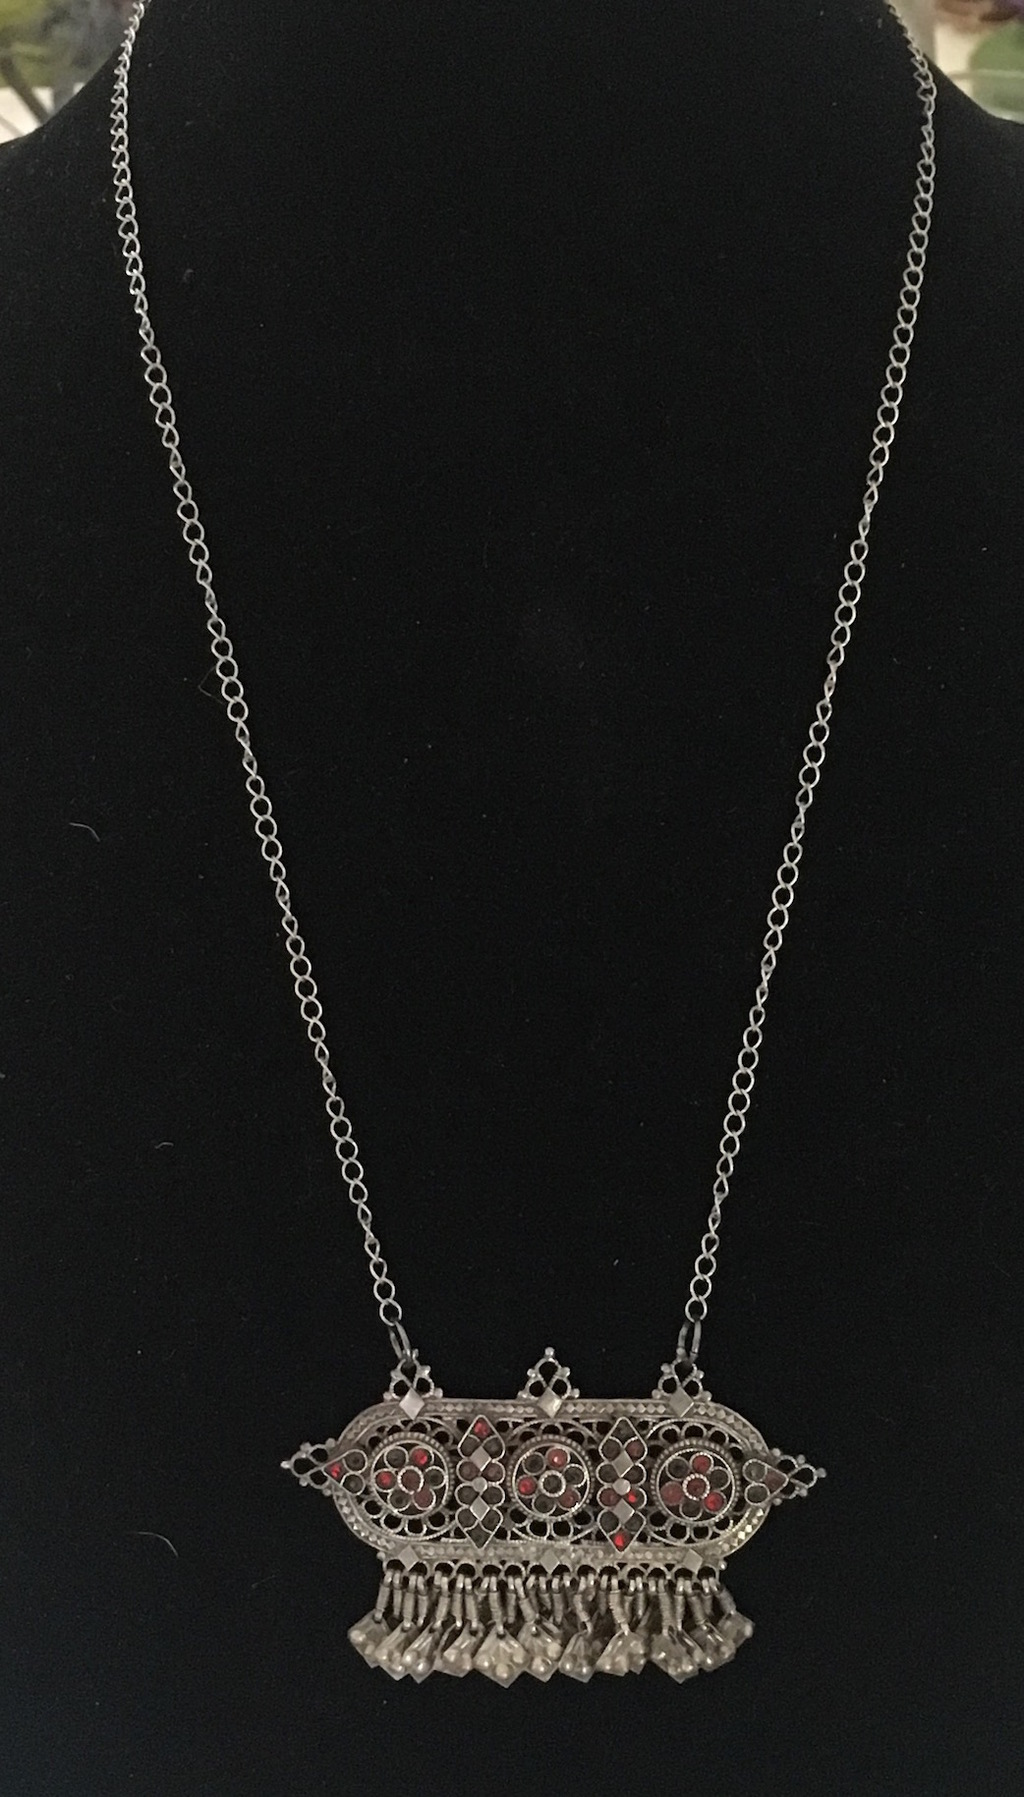 Necklace for my Mom 1